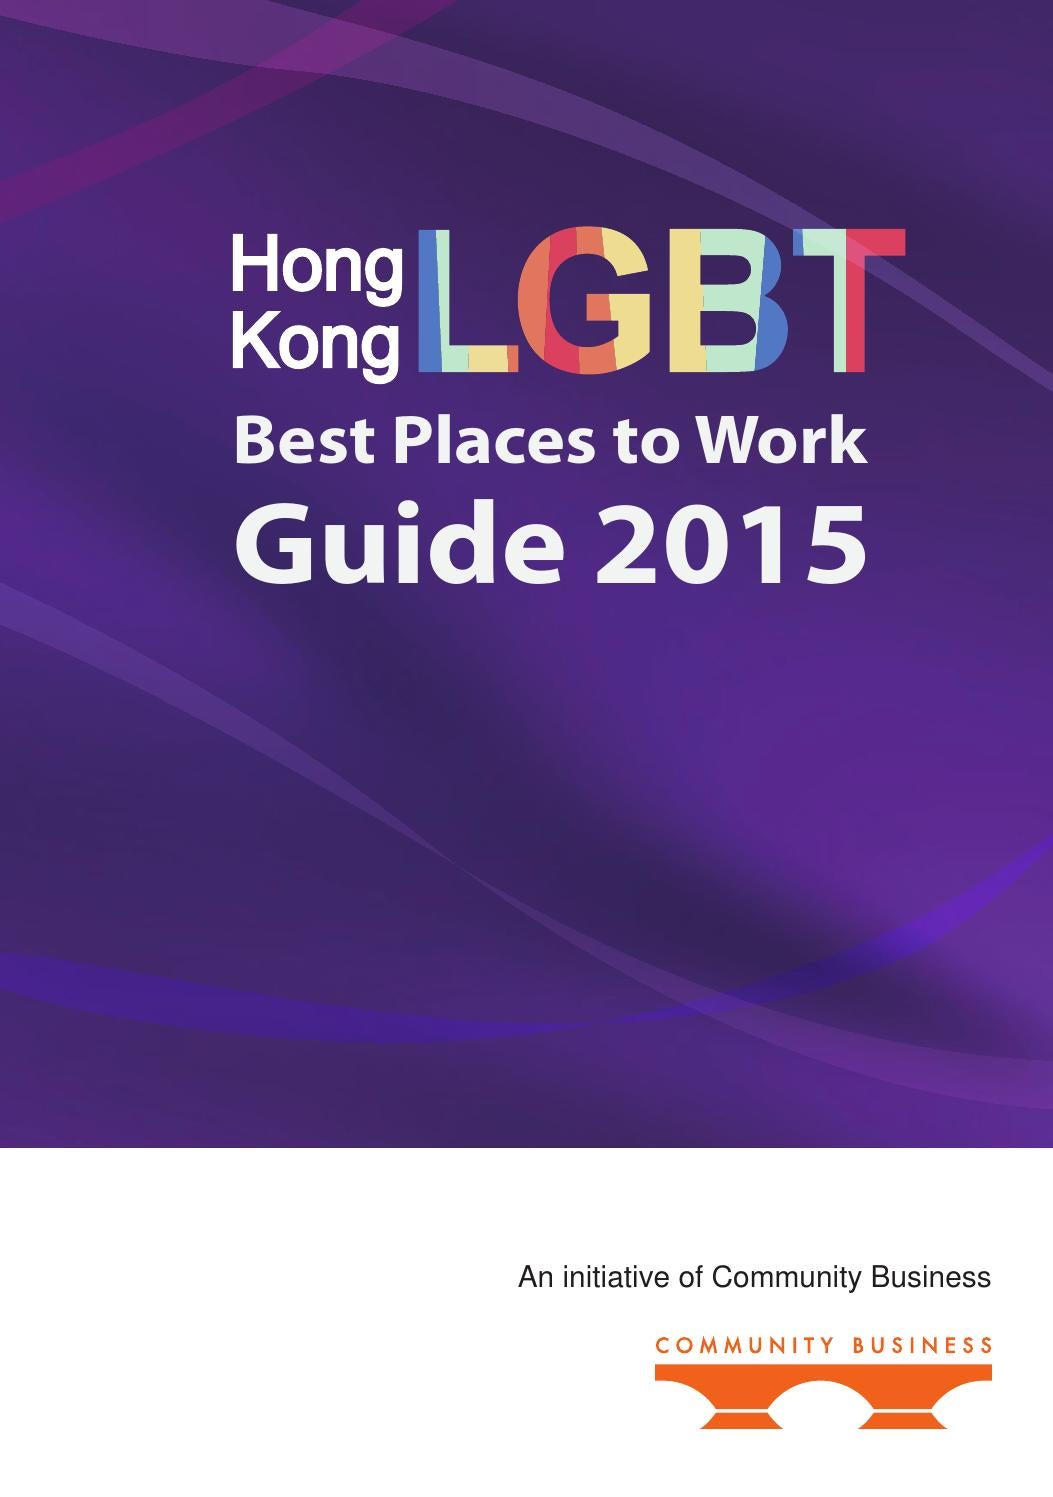 hong kong lgbt best places to work guide 2015 by community business rh issuu com  herbert smith freehills hong kong ipo guide